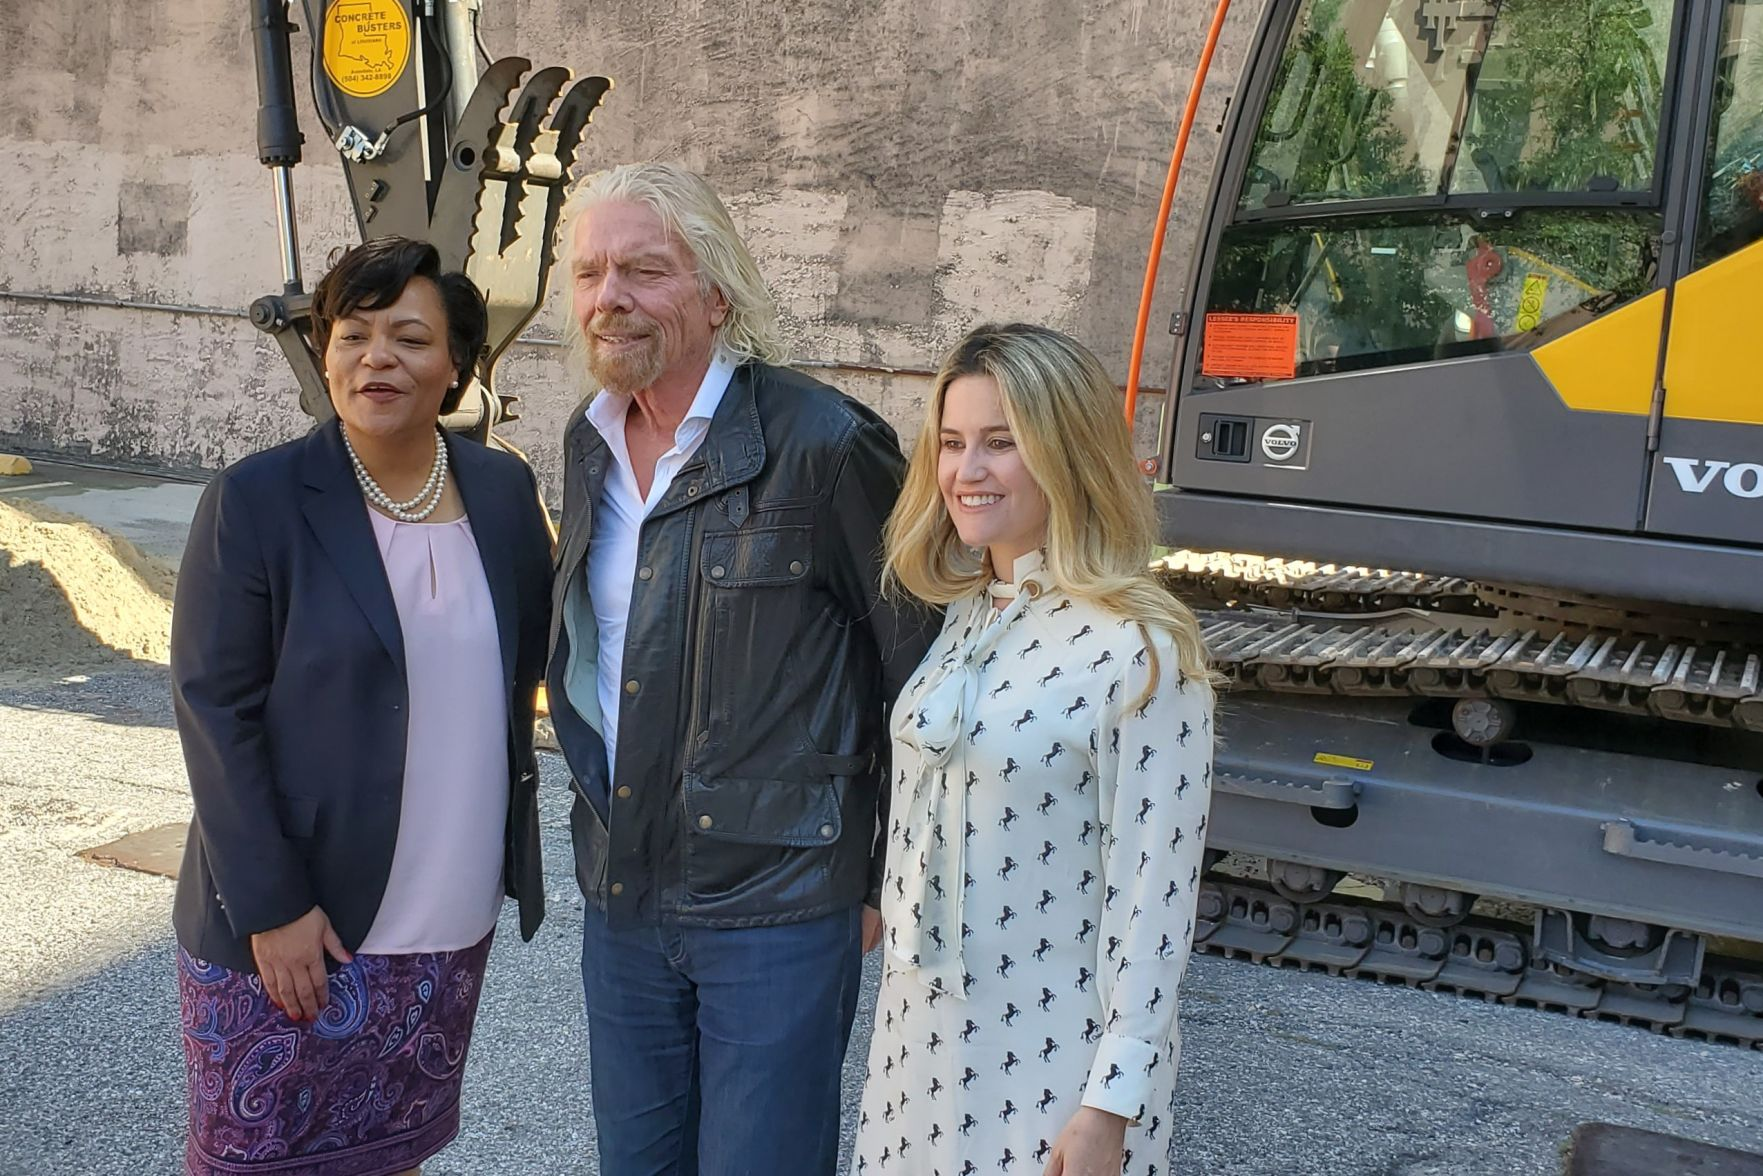 Richard Branson's Virgin Hotel opening in New Orleans in 2021; hotel will cost $80M, host 230 rooms